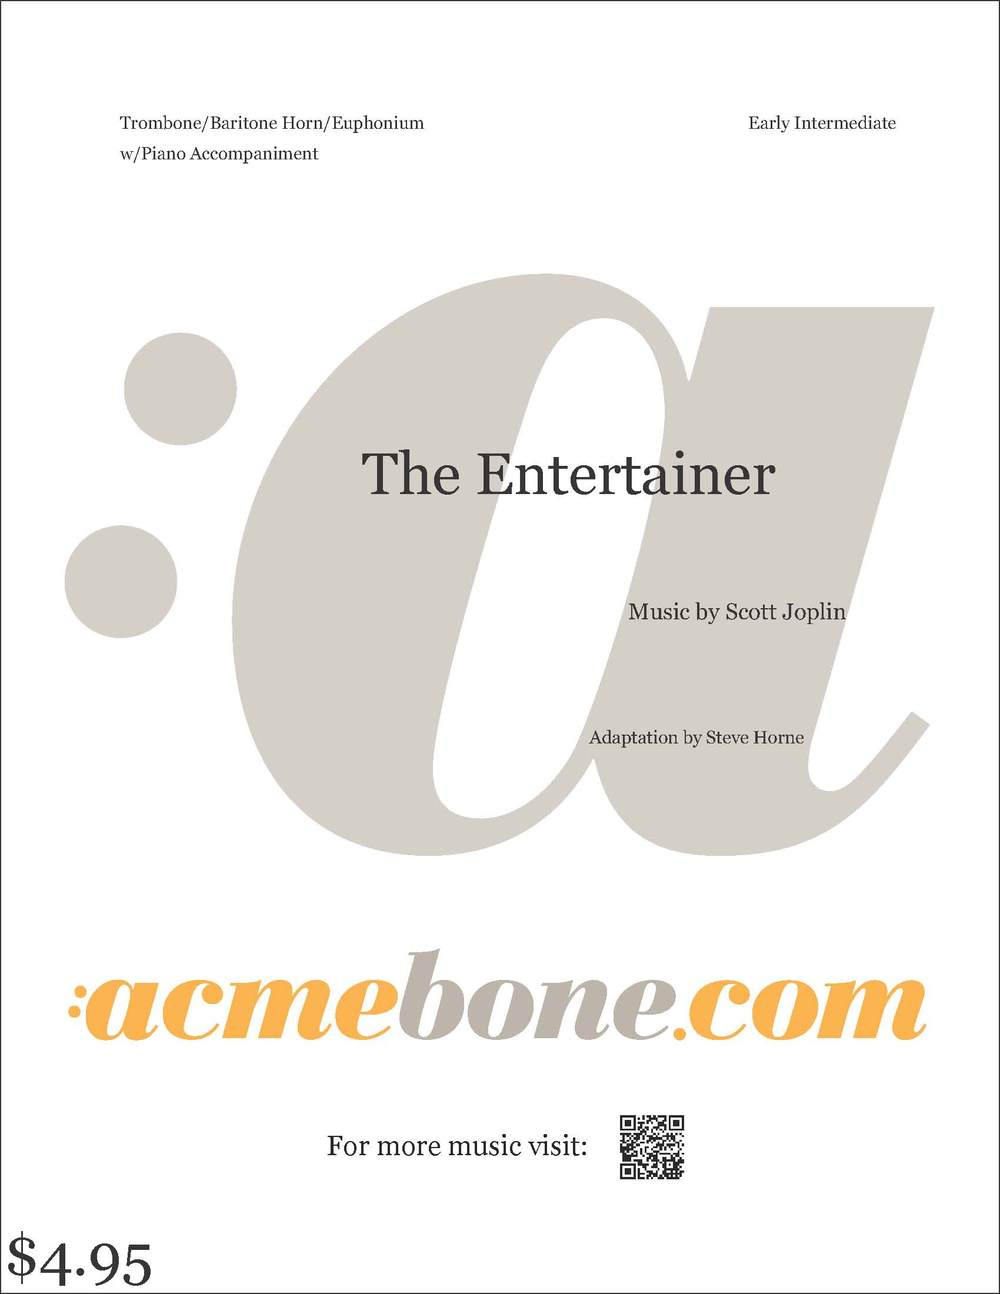 The Entertainer_digital_cover_w-bo_price.jpg